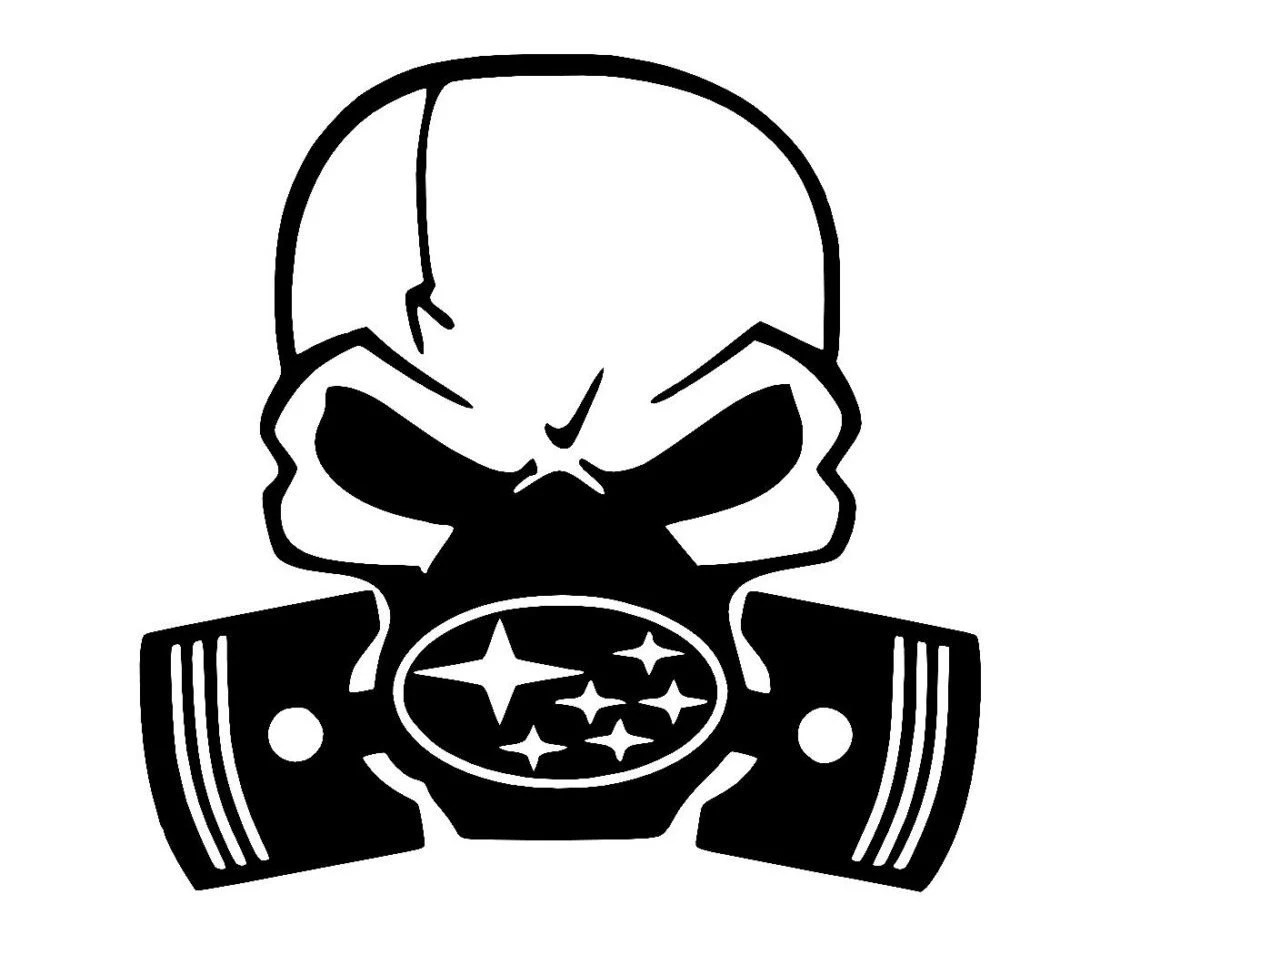 Skull Decal Gas Mask With Any Car Truck Motorcycle